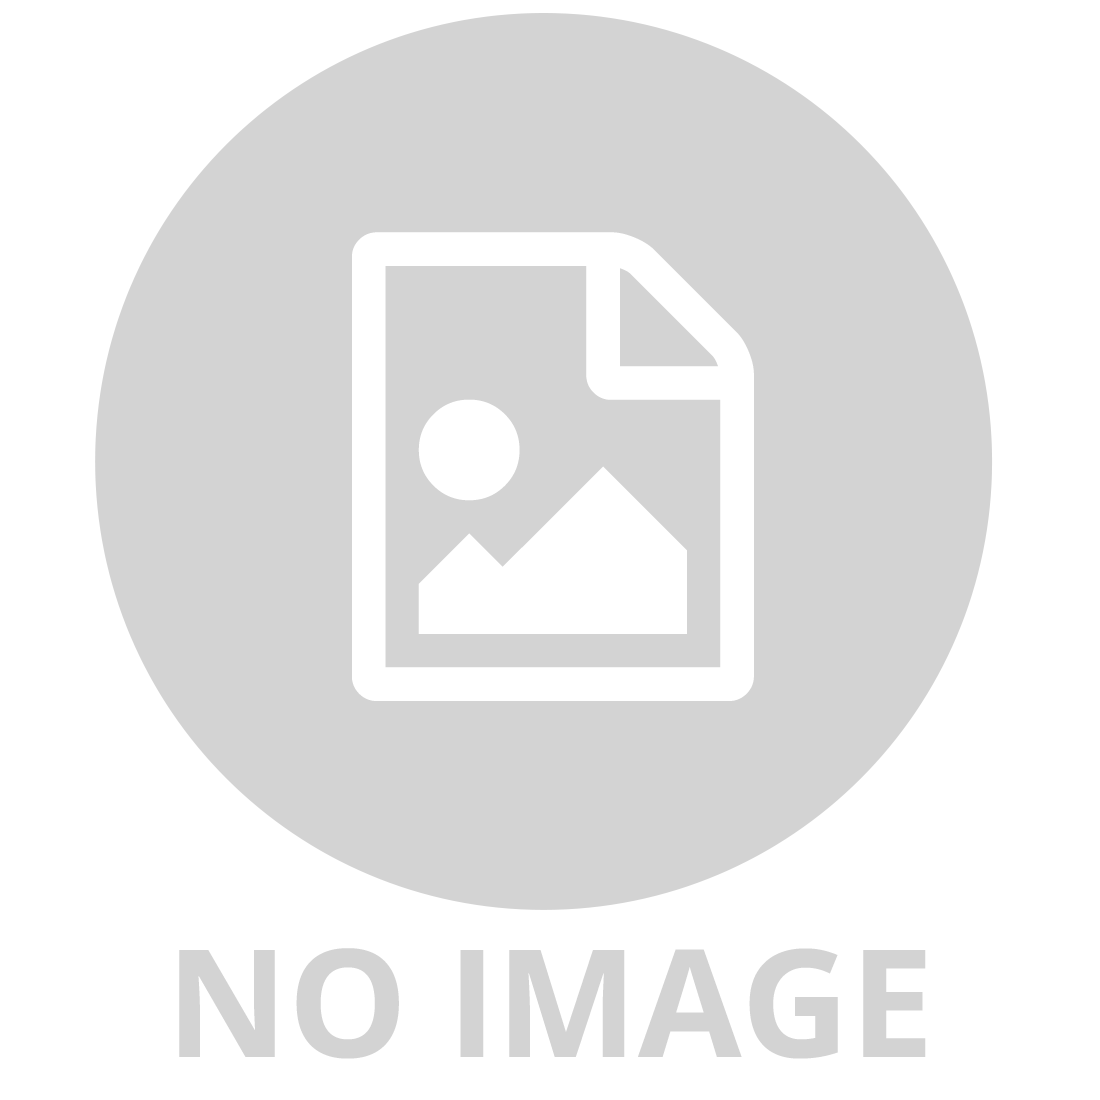 PAW PATROL- CHASES OFF ROAD RESCUE